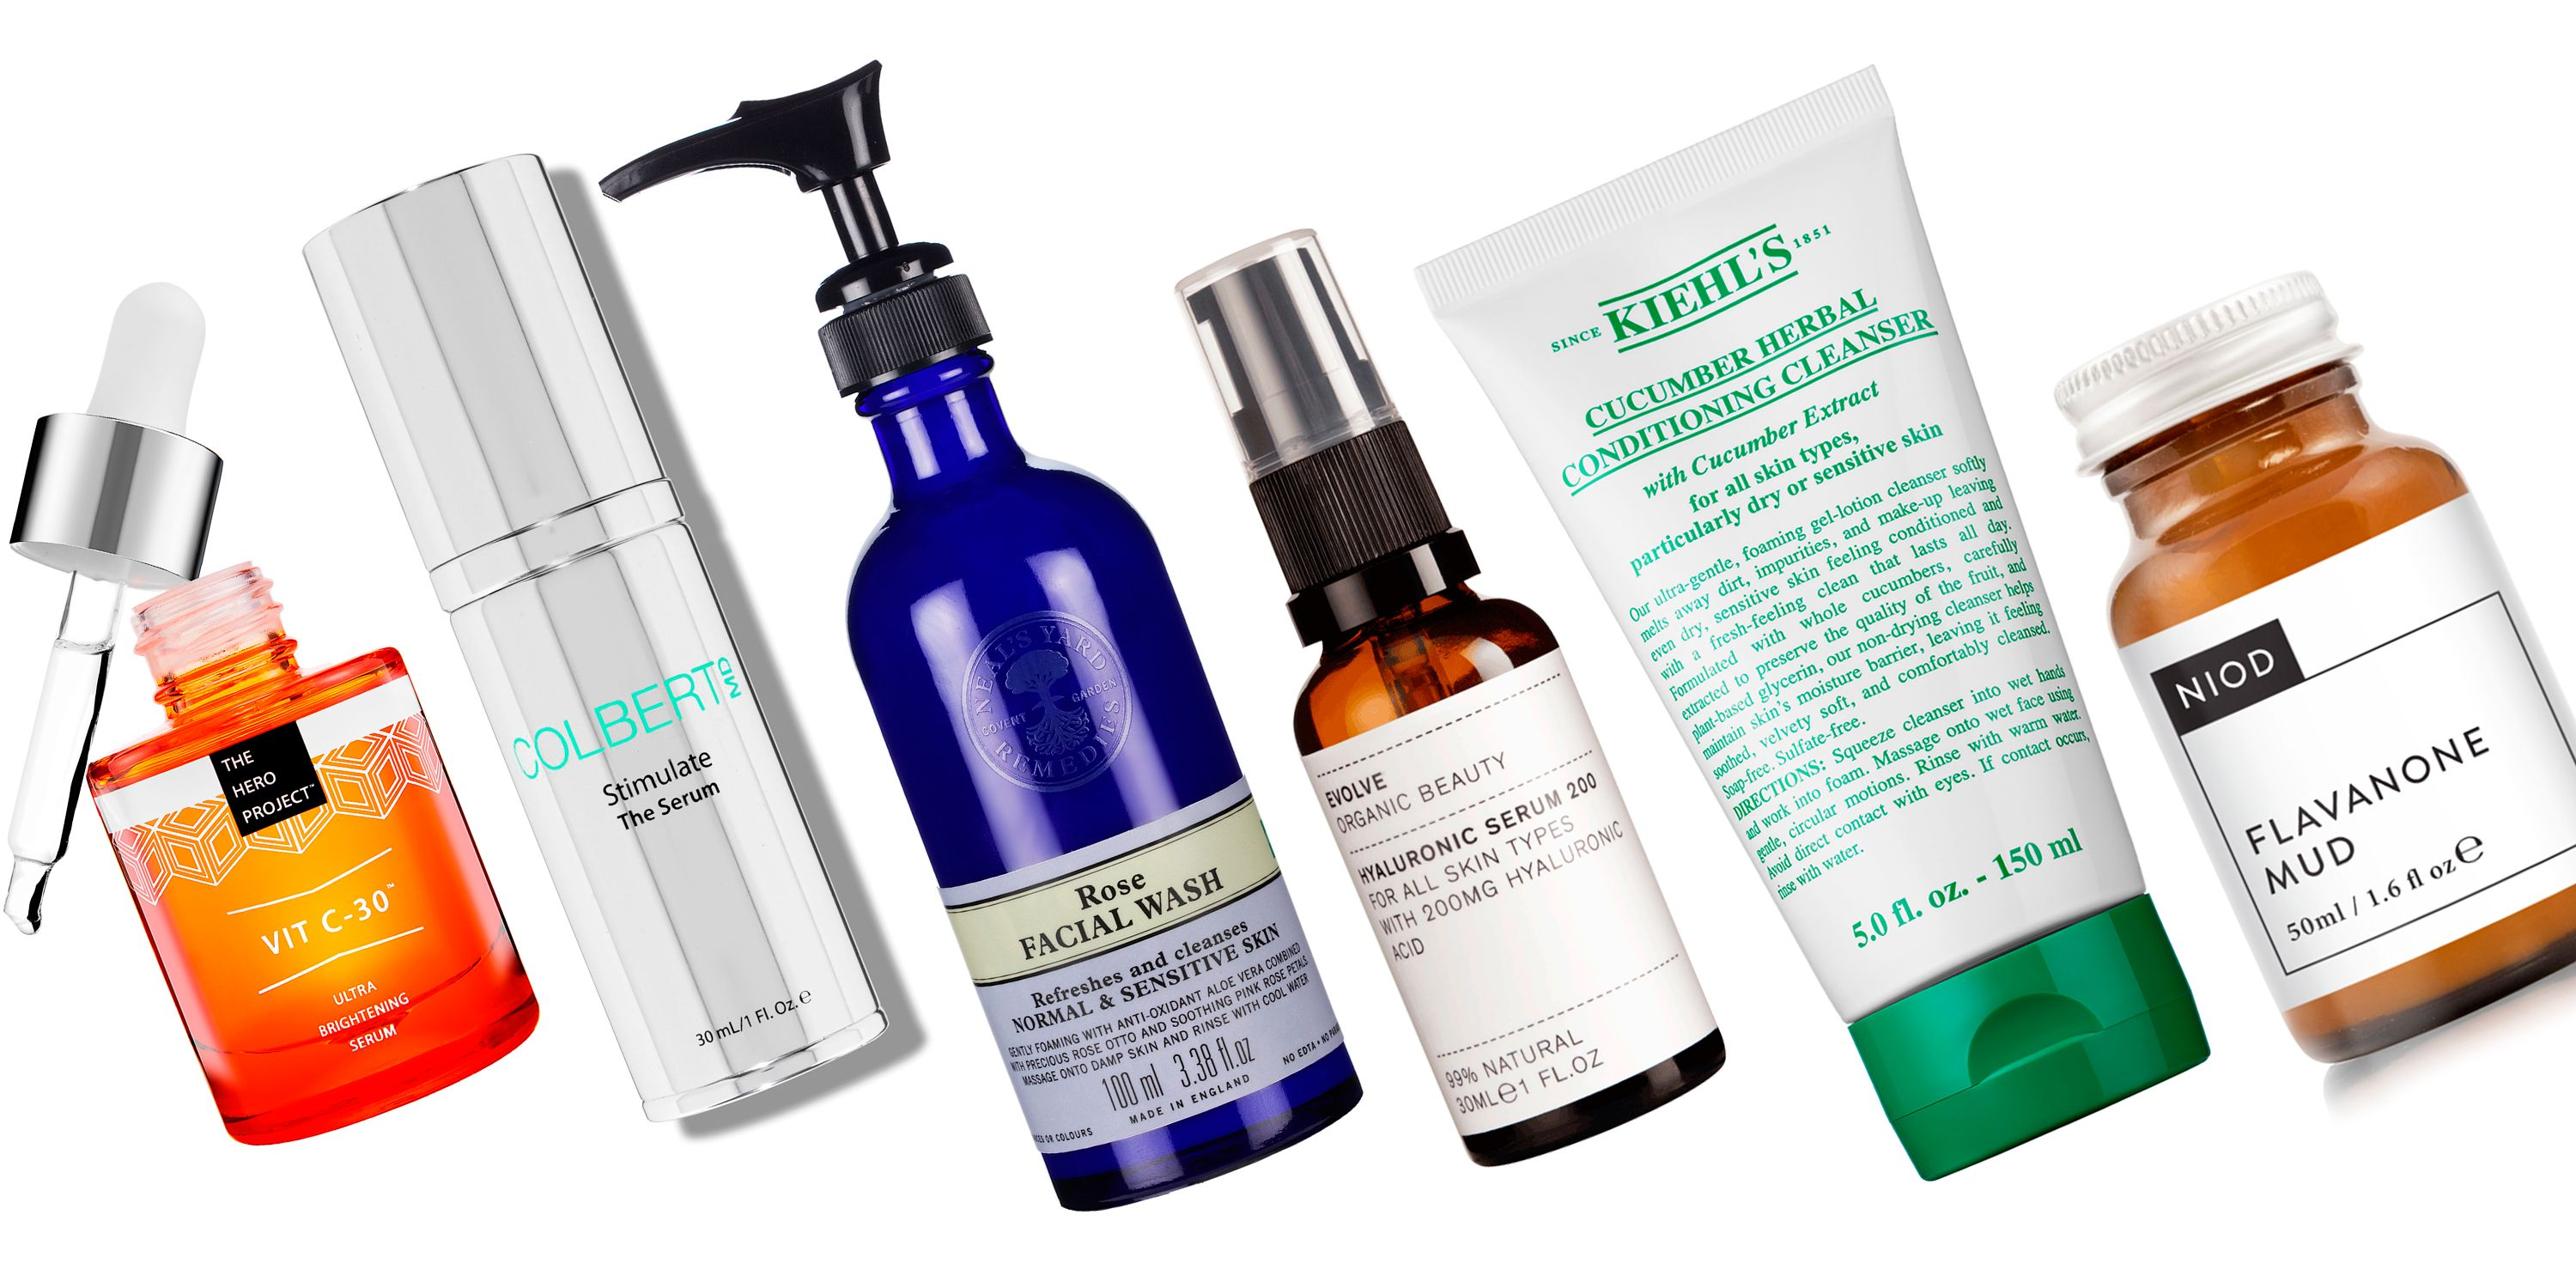 Best Skin Care Products 2018 - 19 our Beauty Editors love